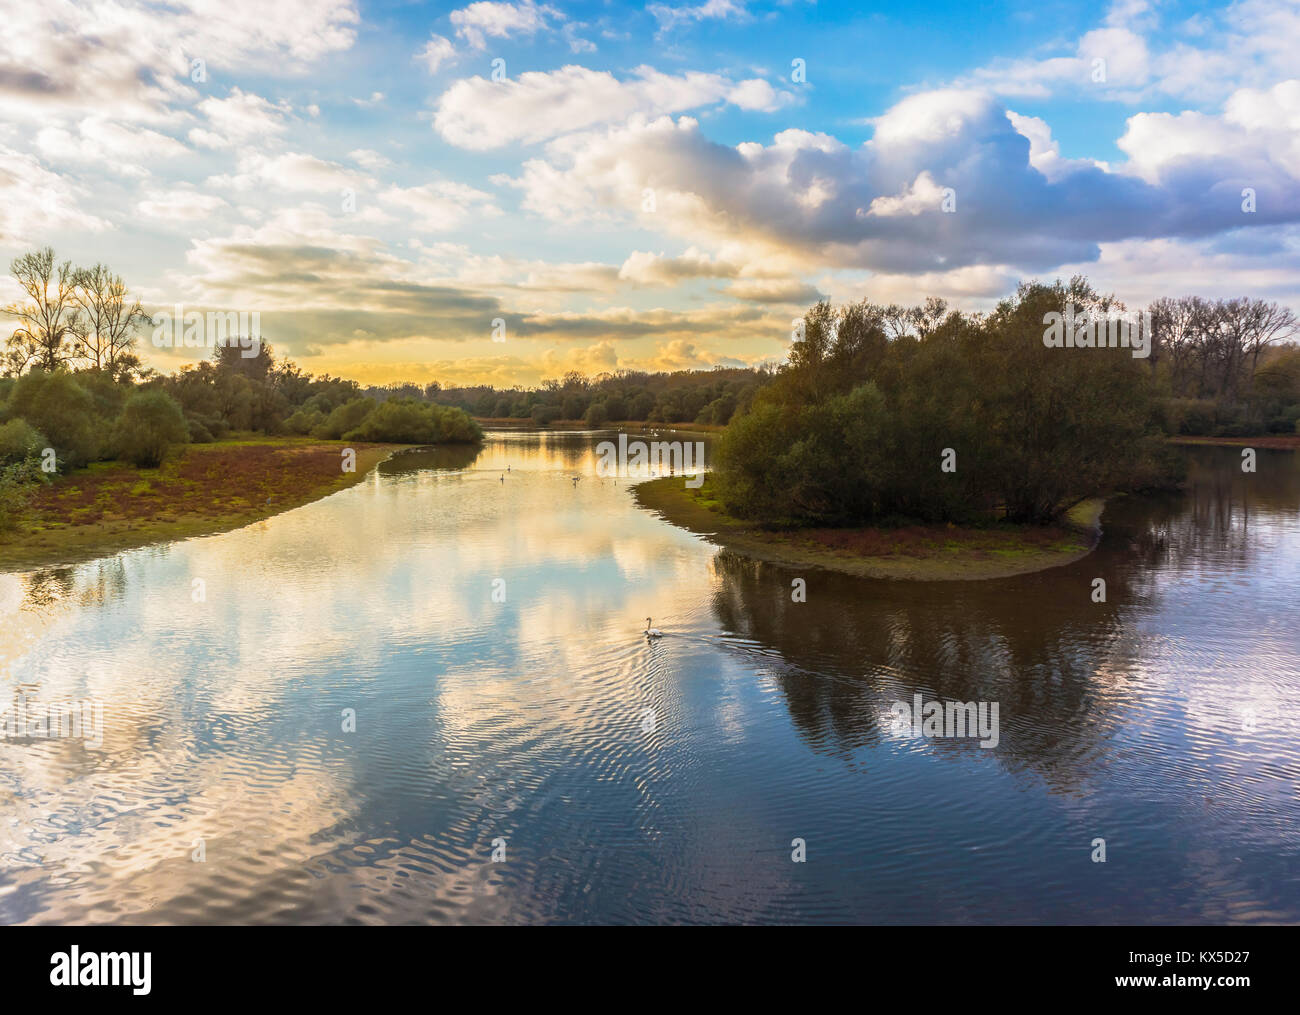 Beautiful landscape of the Sauer Delta nature reserve on late afternoon, Northern Alsace, France, Europe. - Stock Image